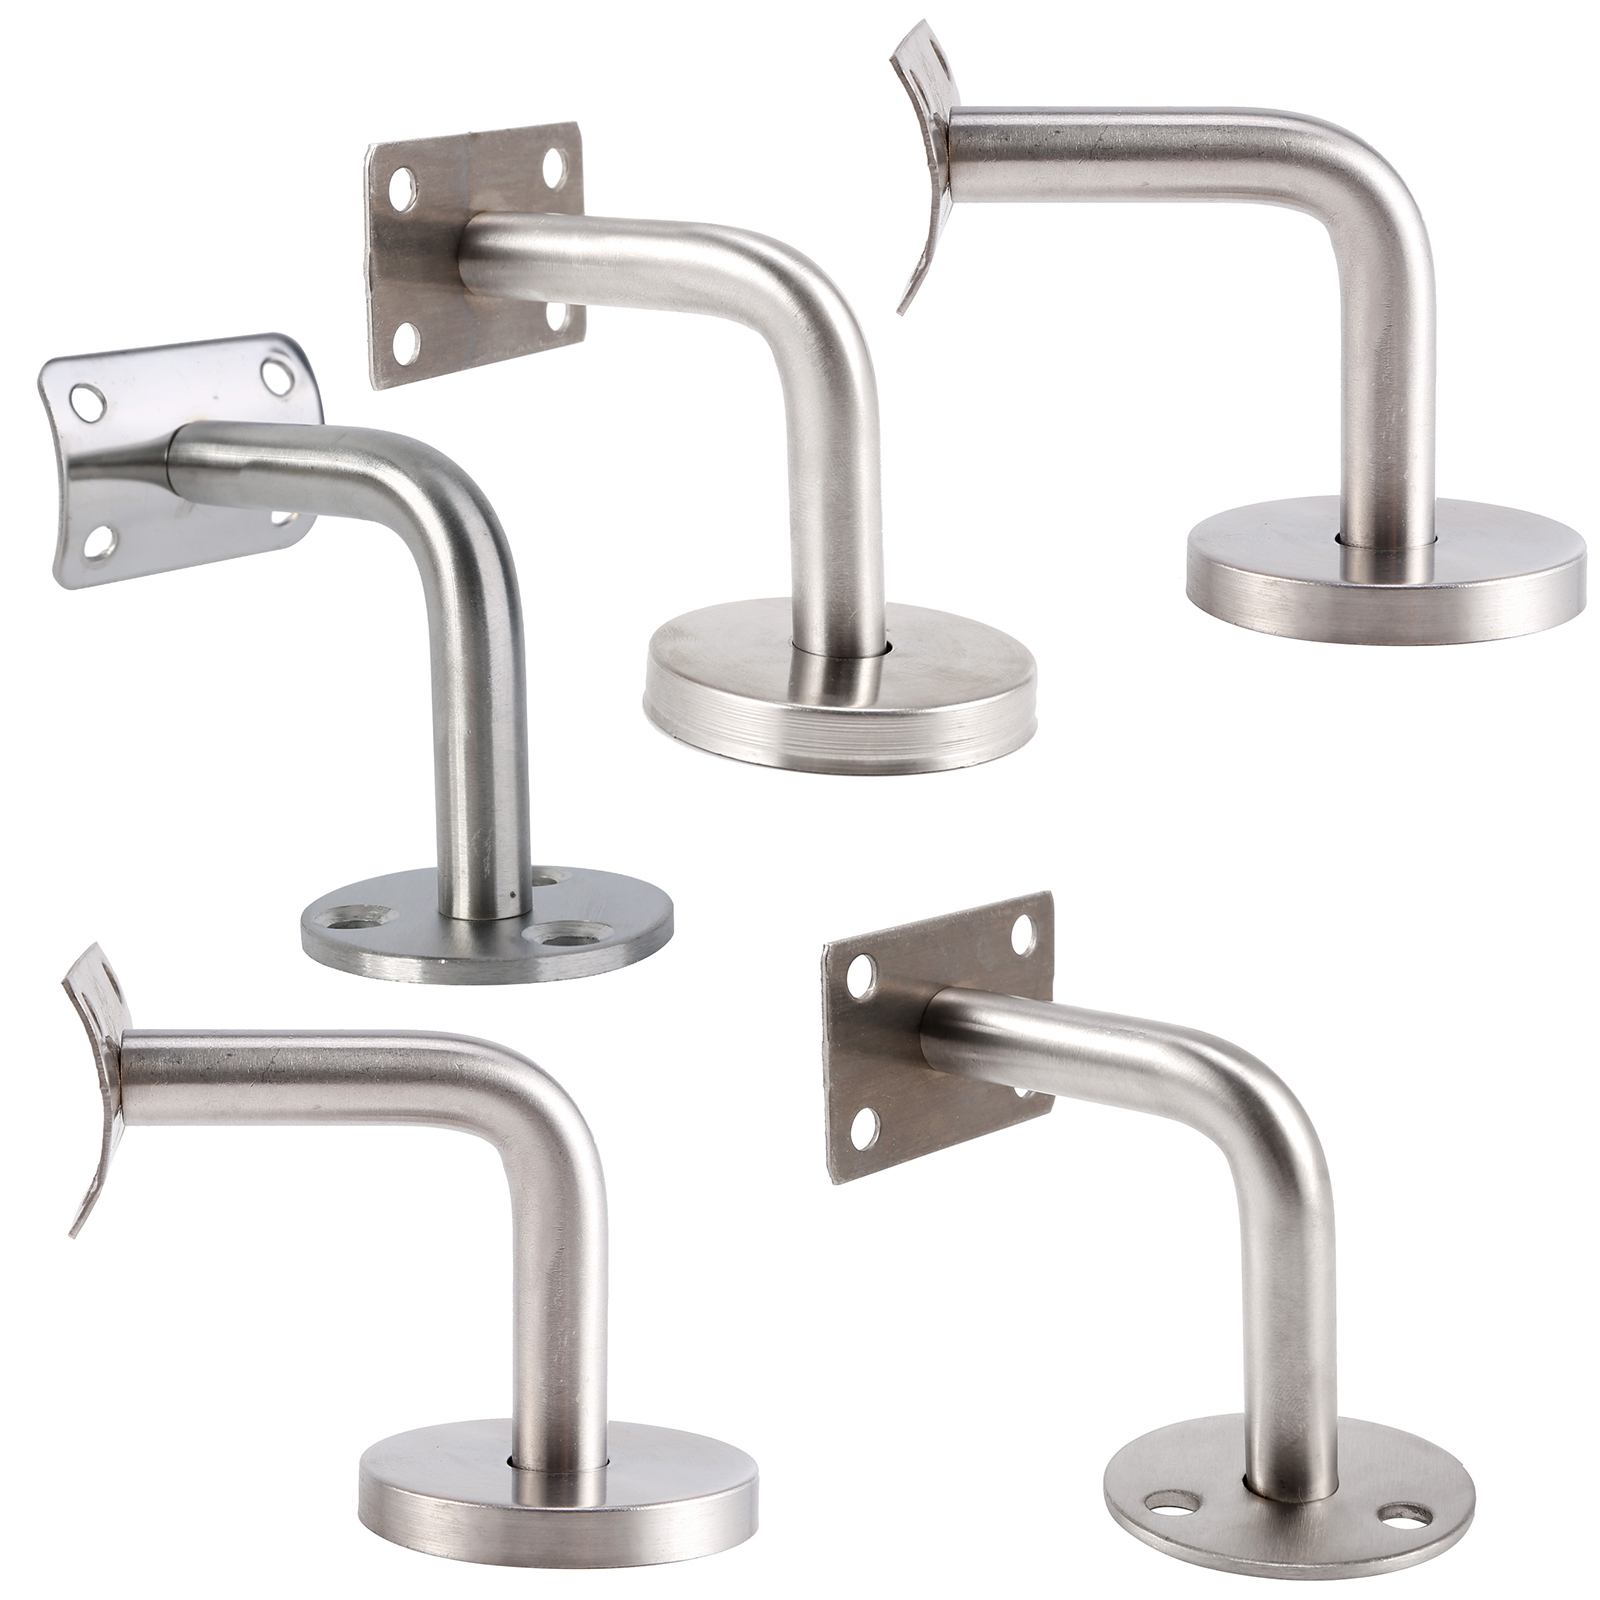 5x Stainless Steel Stair Handrail Guard Rail Mount